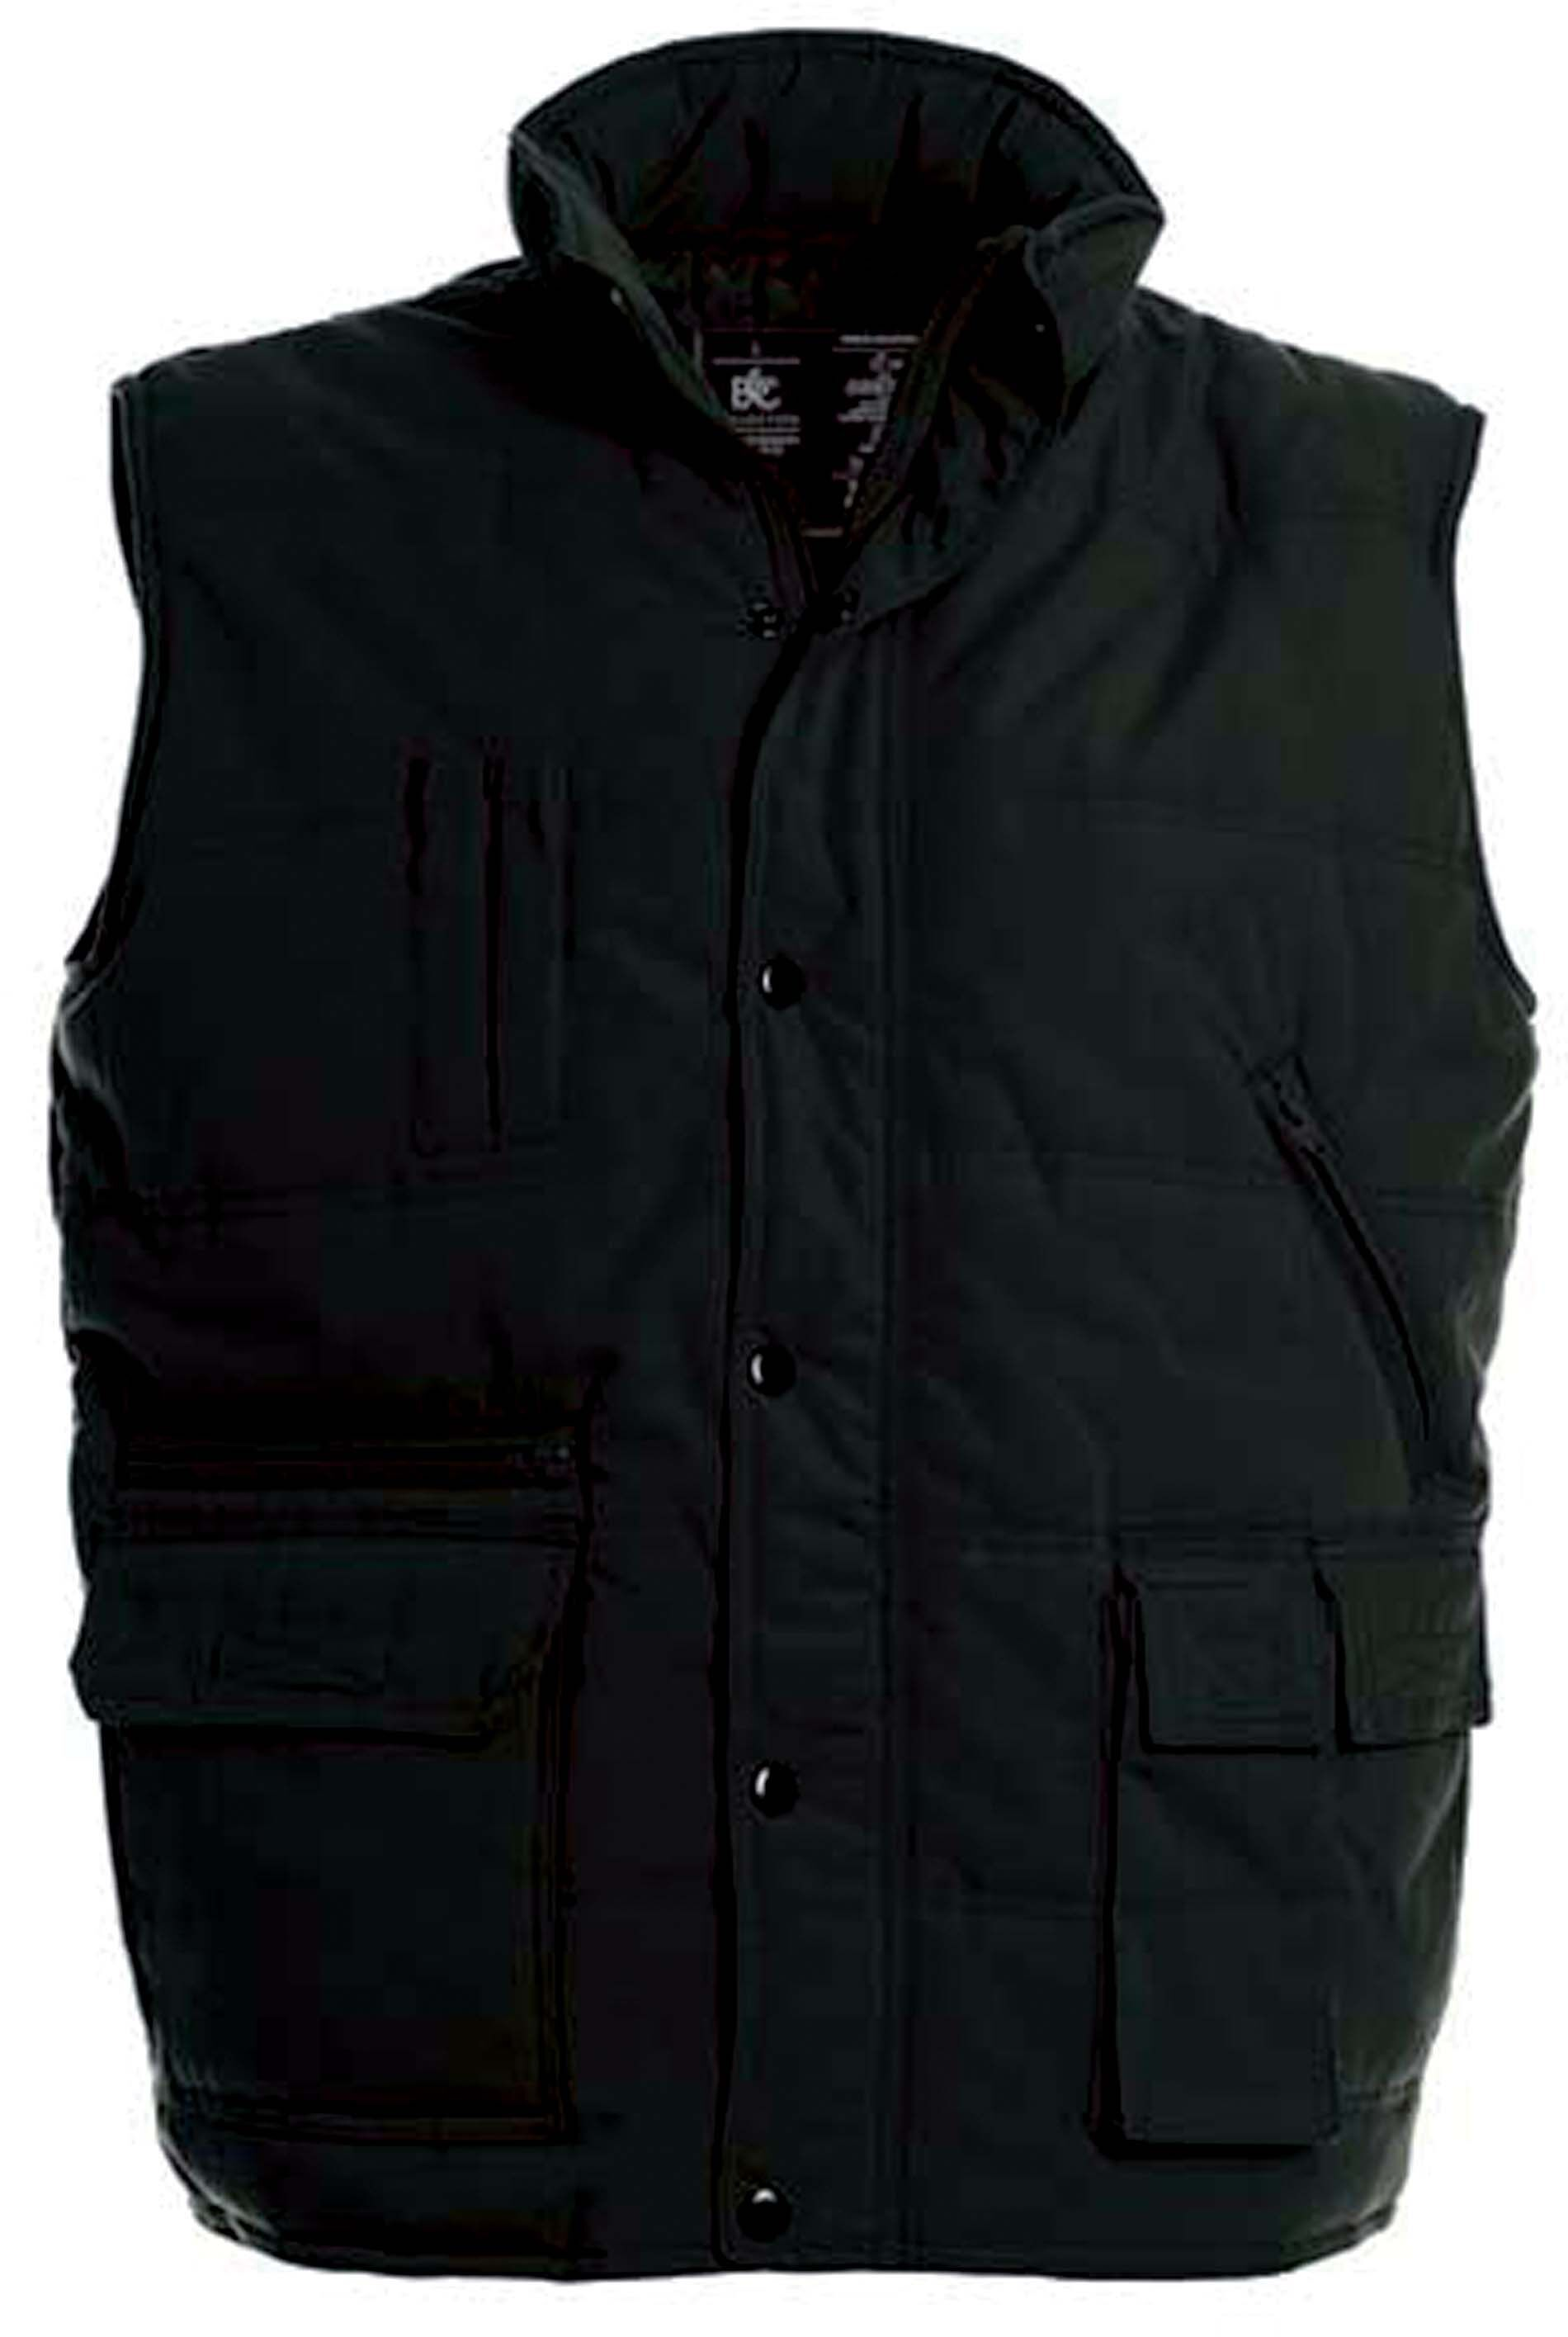 BODYWARMER EXPLORER Black